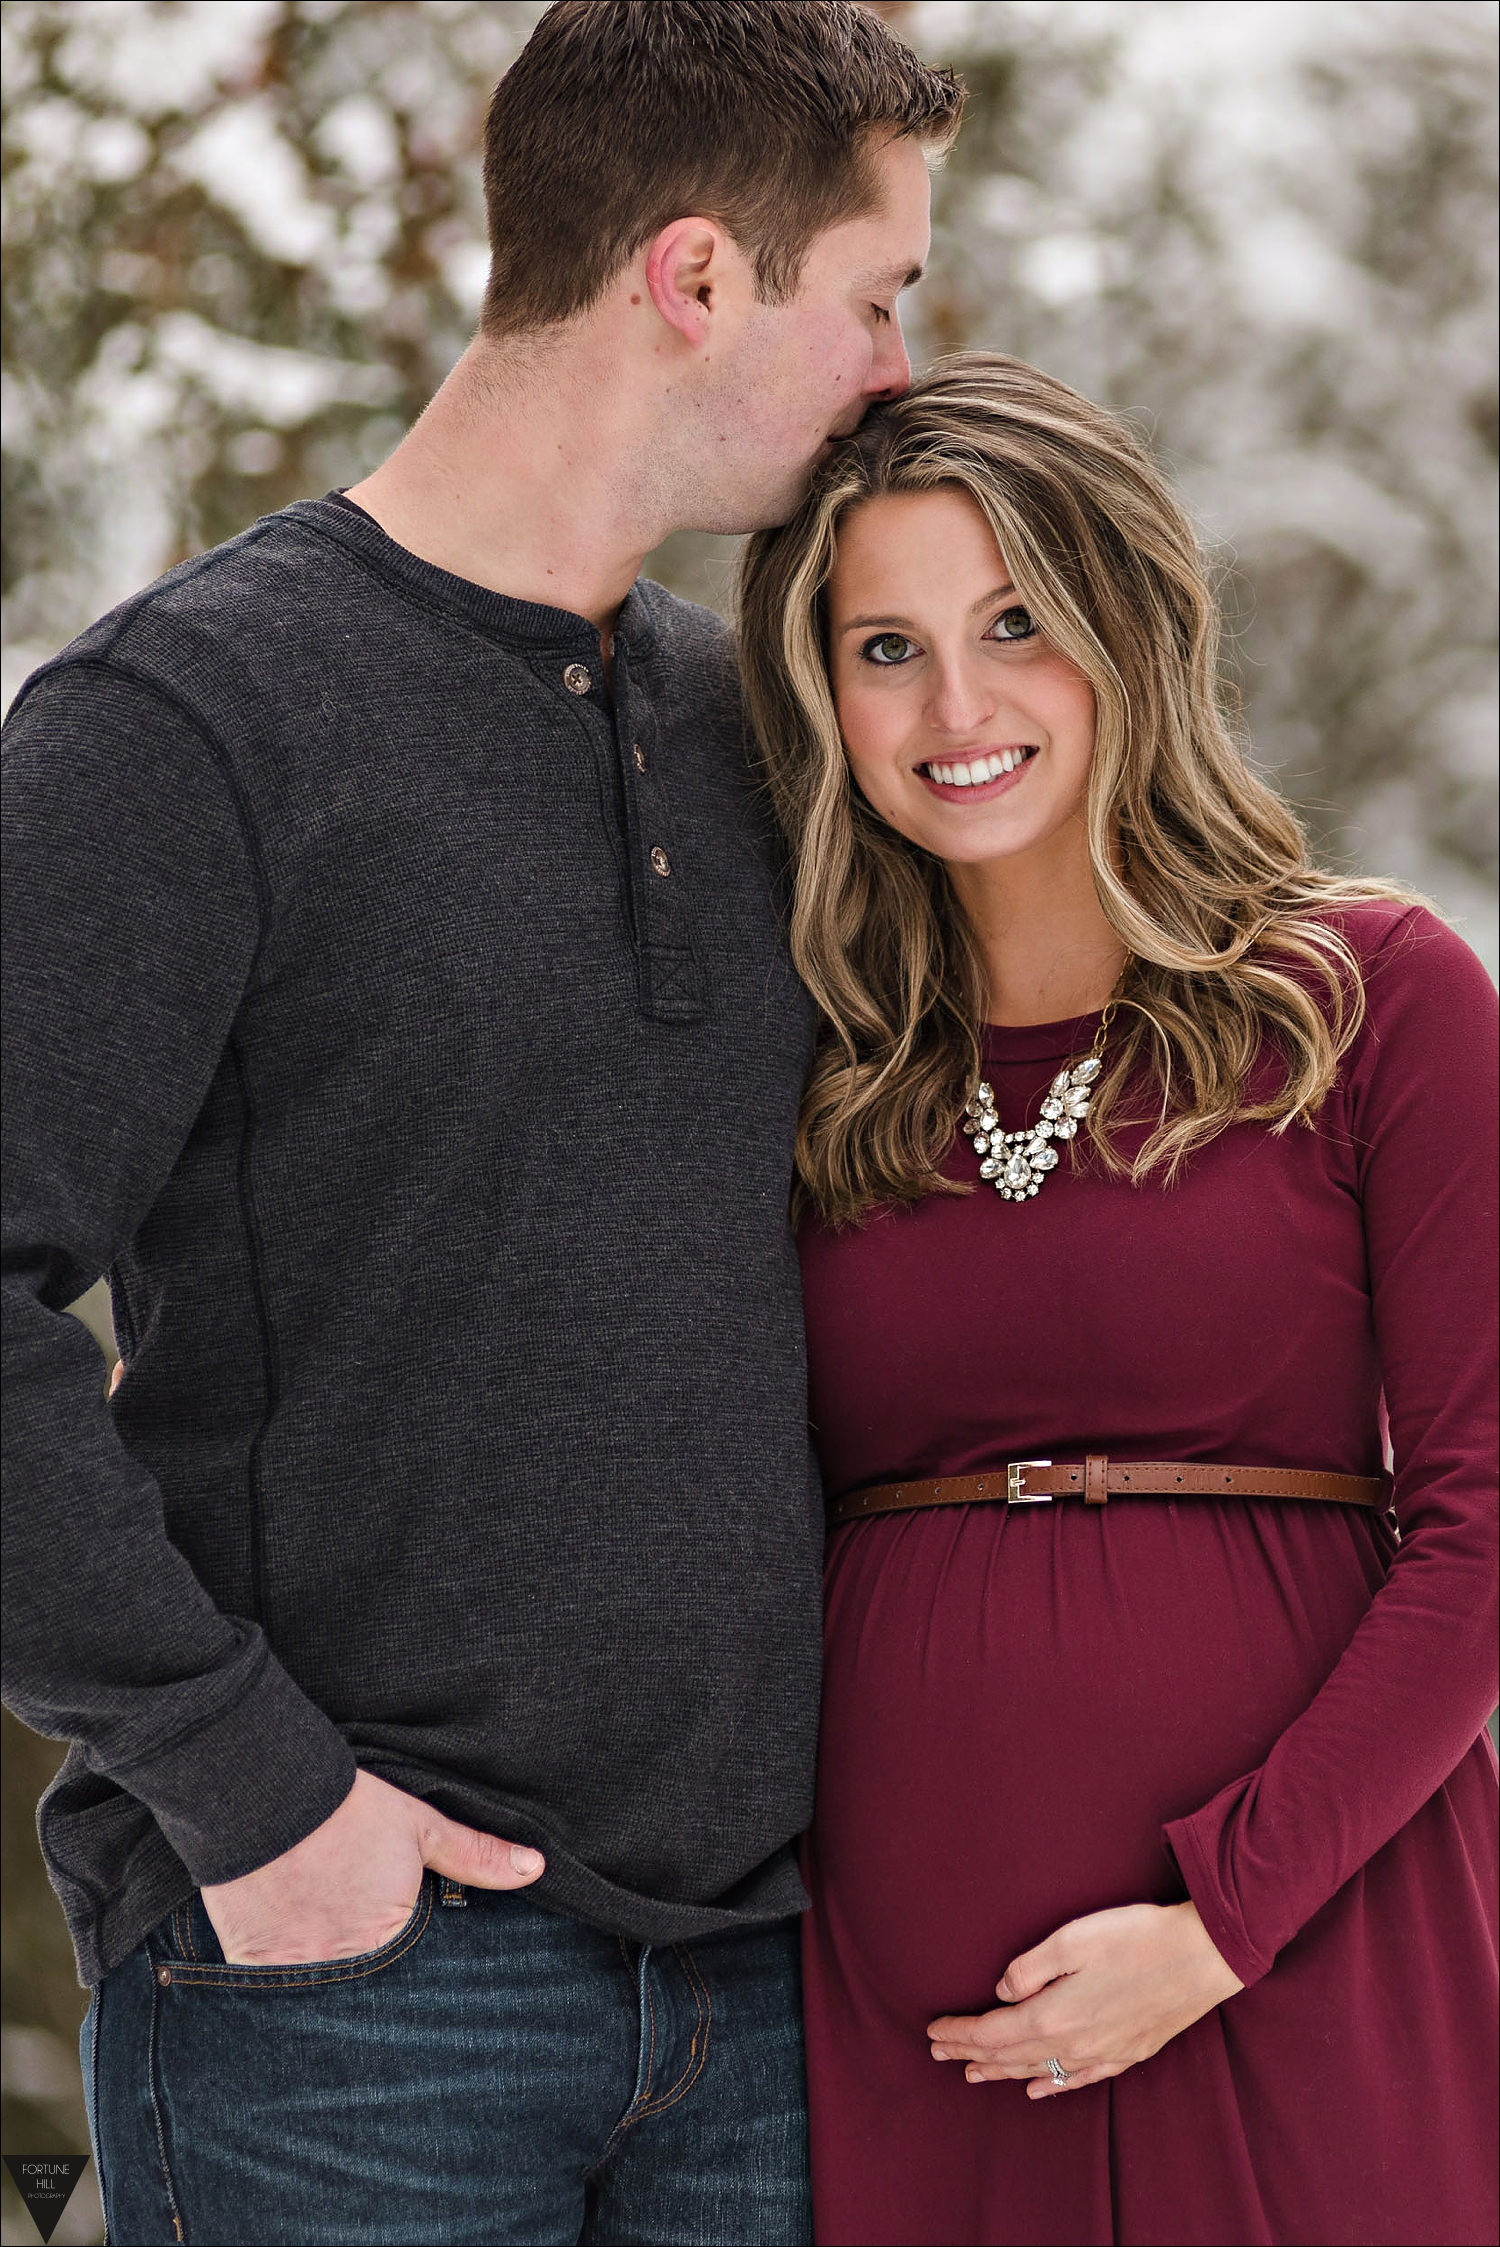 Derby Reach maternity pictures